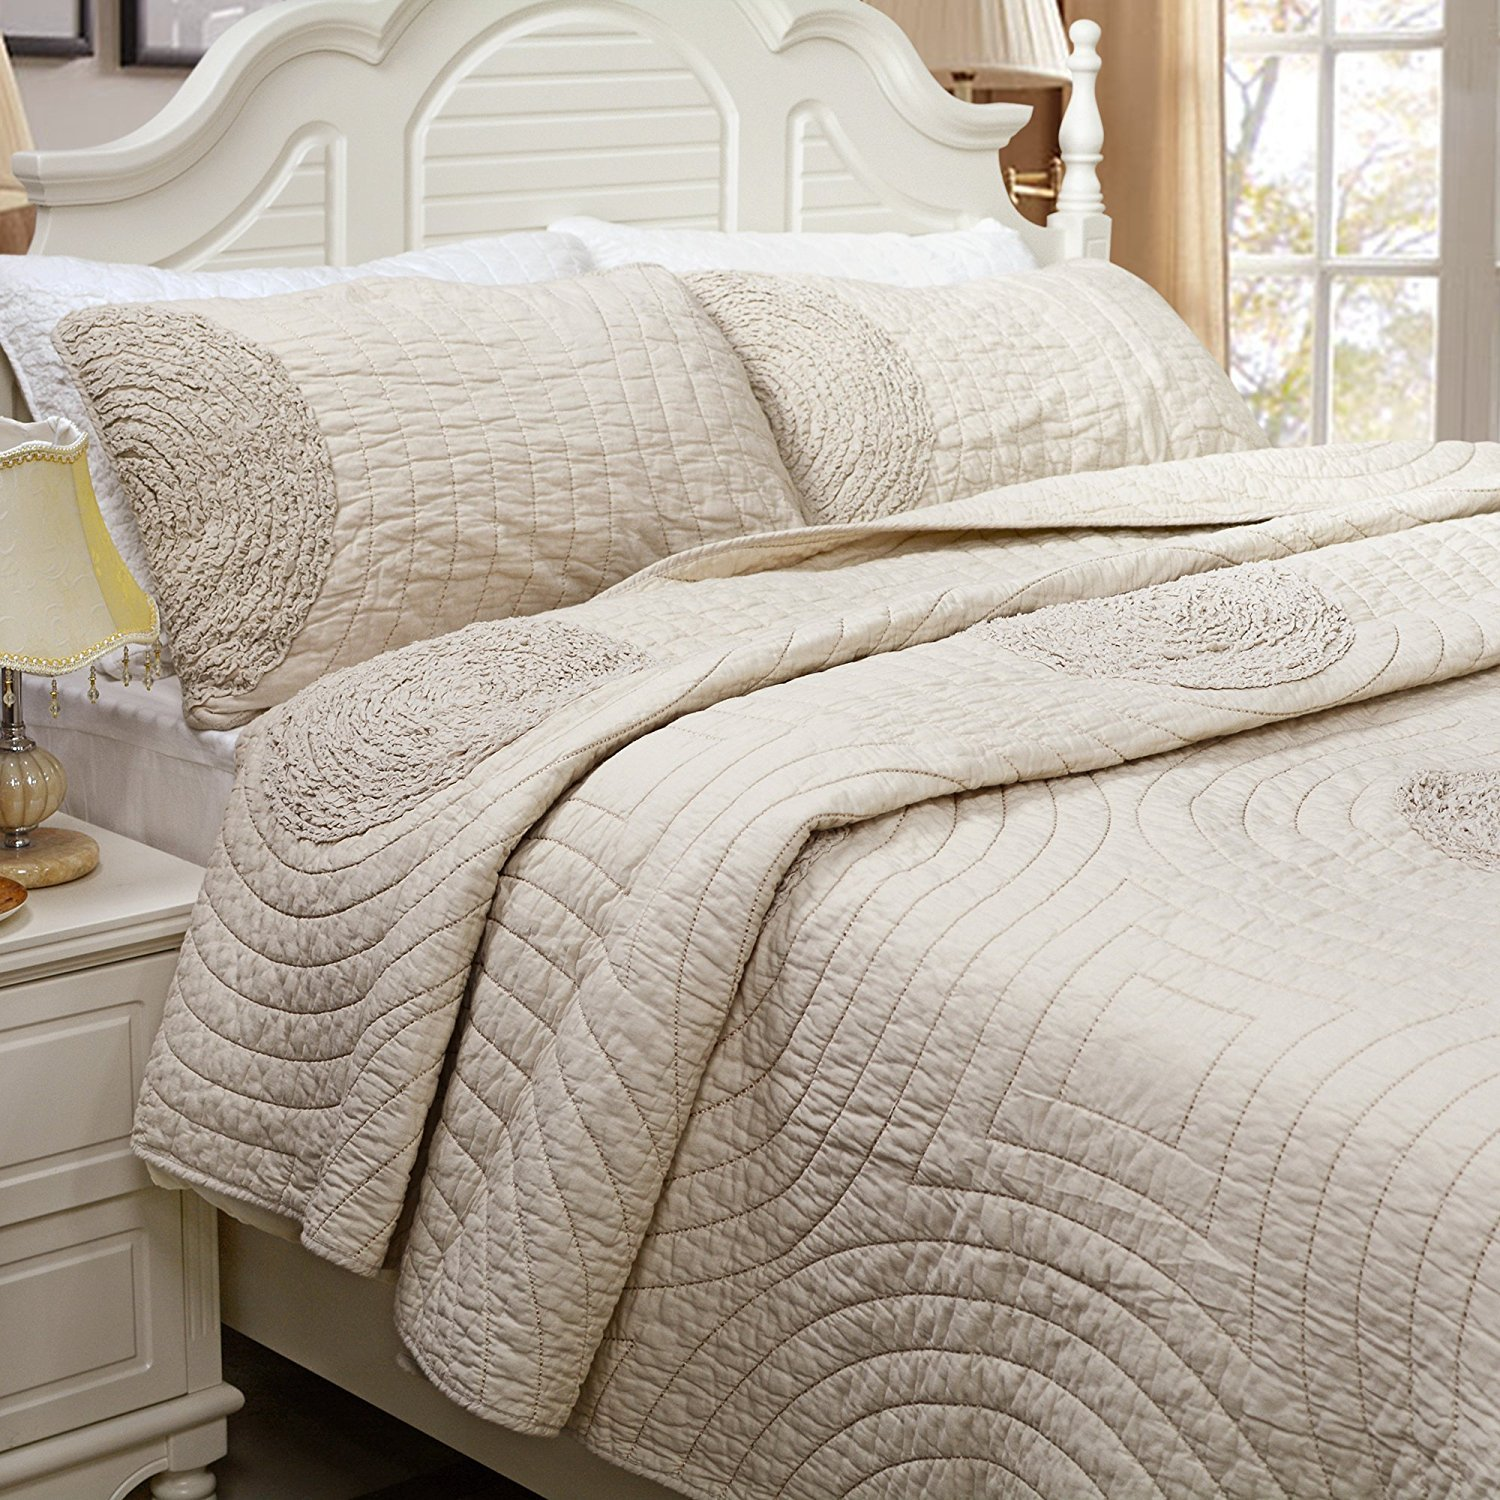 Brandream Queen Size Beige Bed Quilt Set Luxury Bedspread